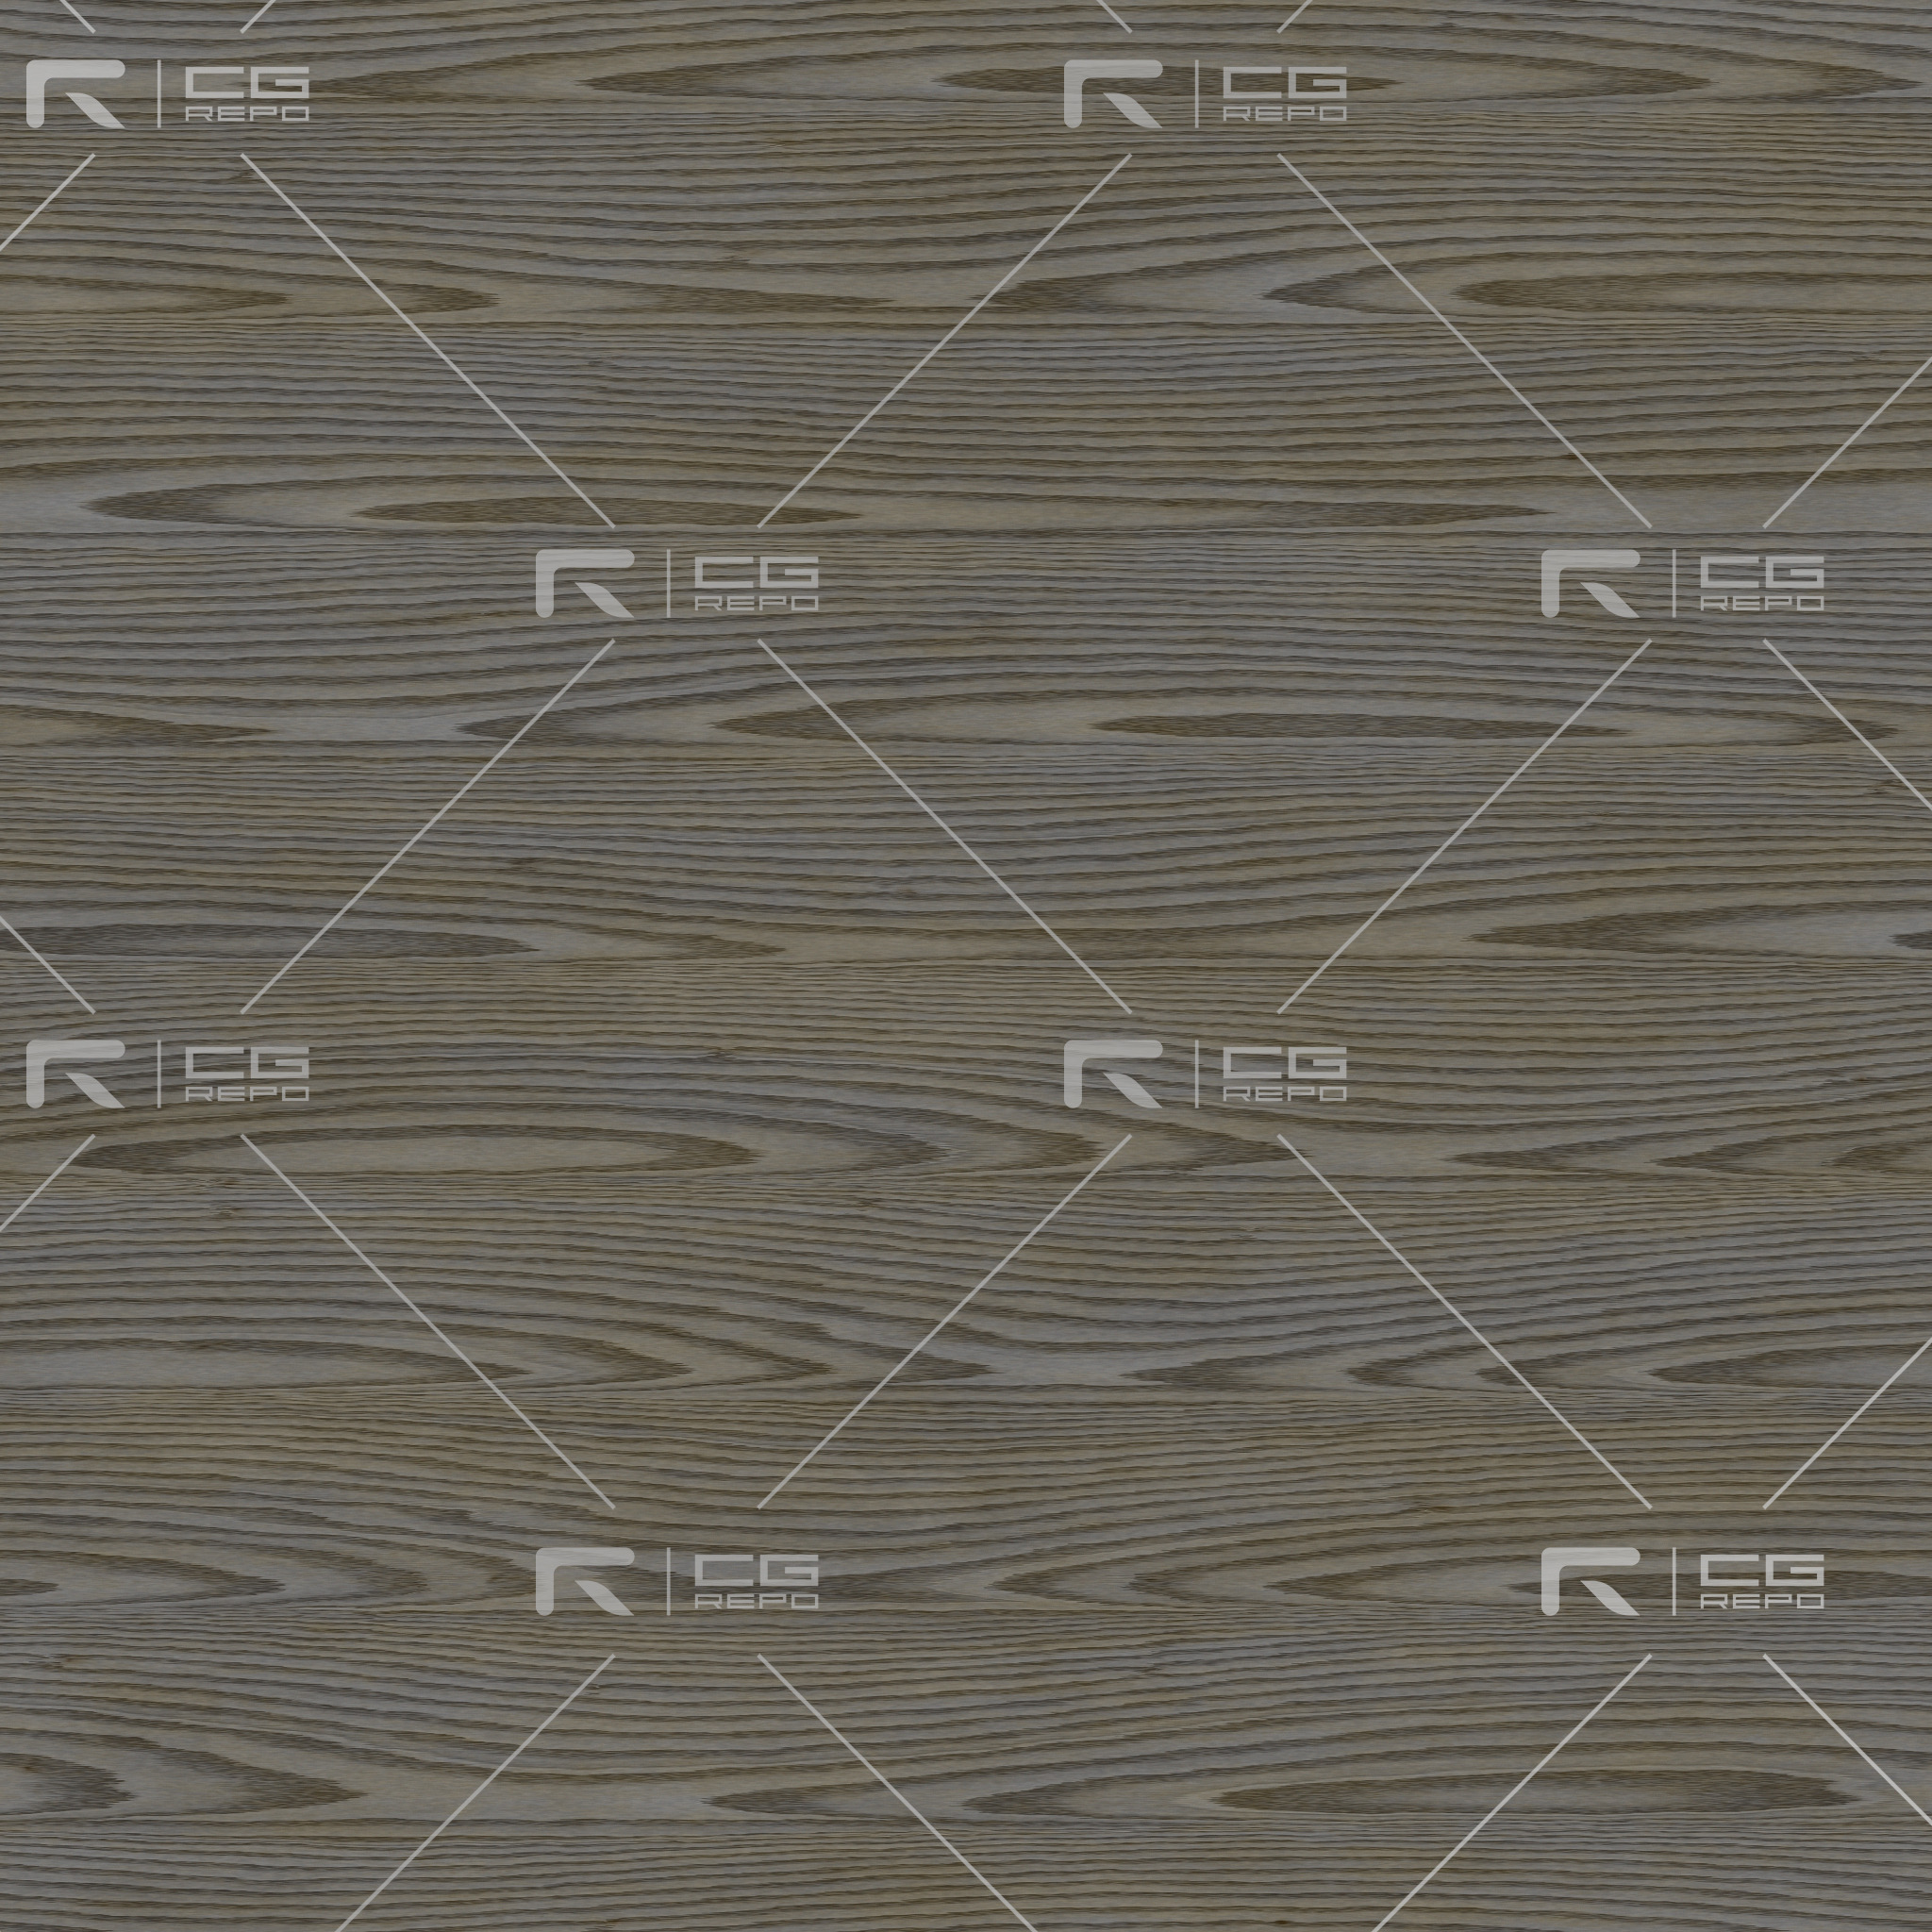 Oak - Painted Grunge Grey - Rift Sawn BaseColor Texture